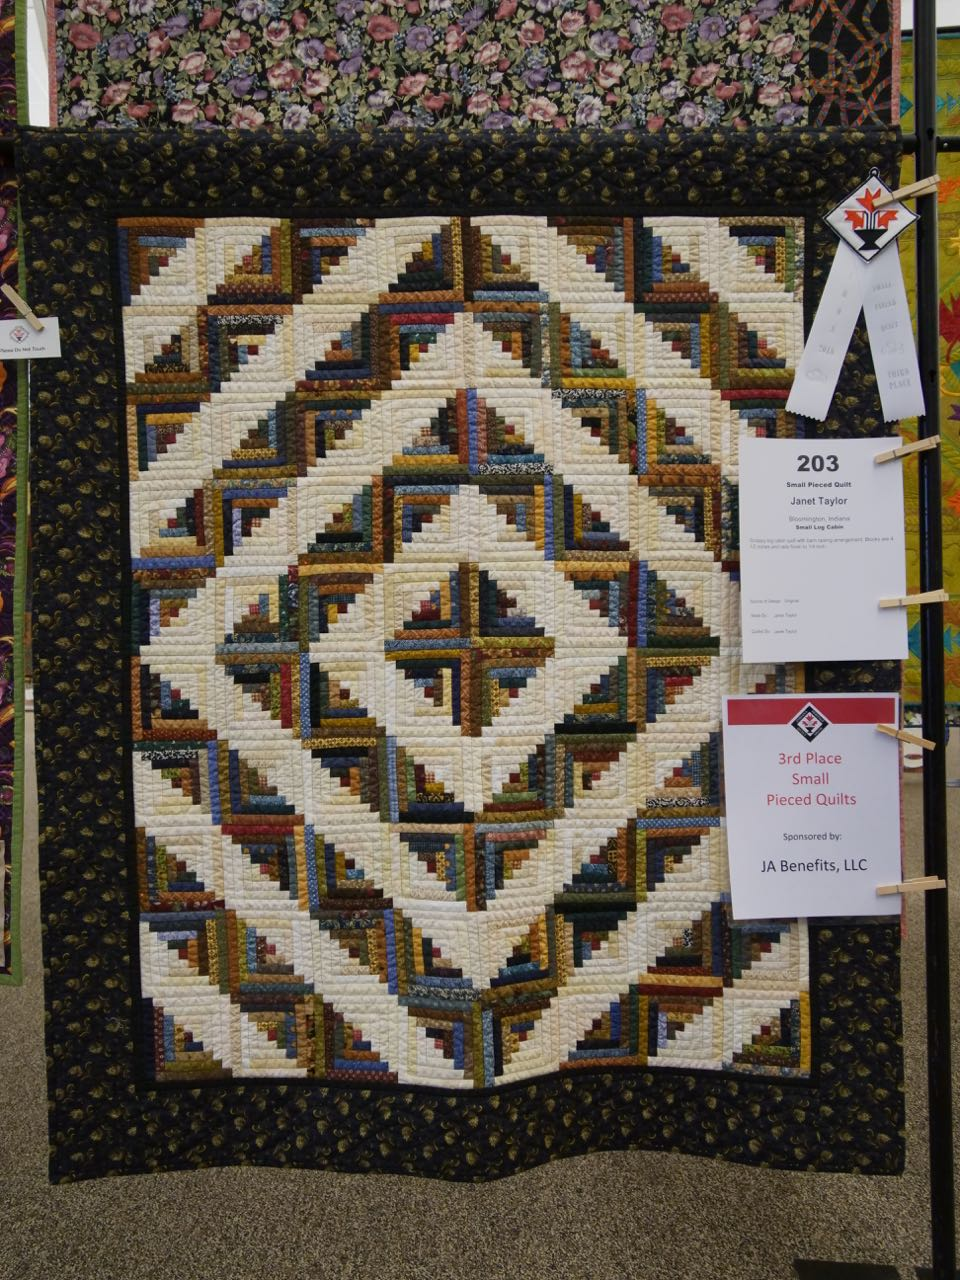 Small Log Cabin - 3rd Place, Small Pieced Quilts